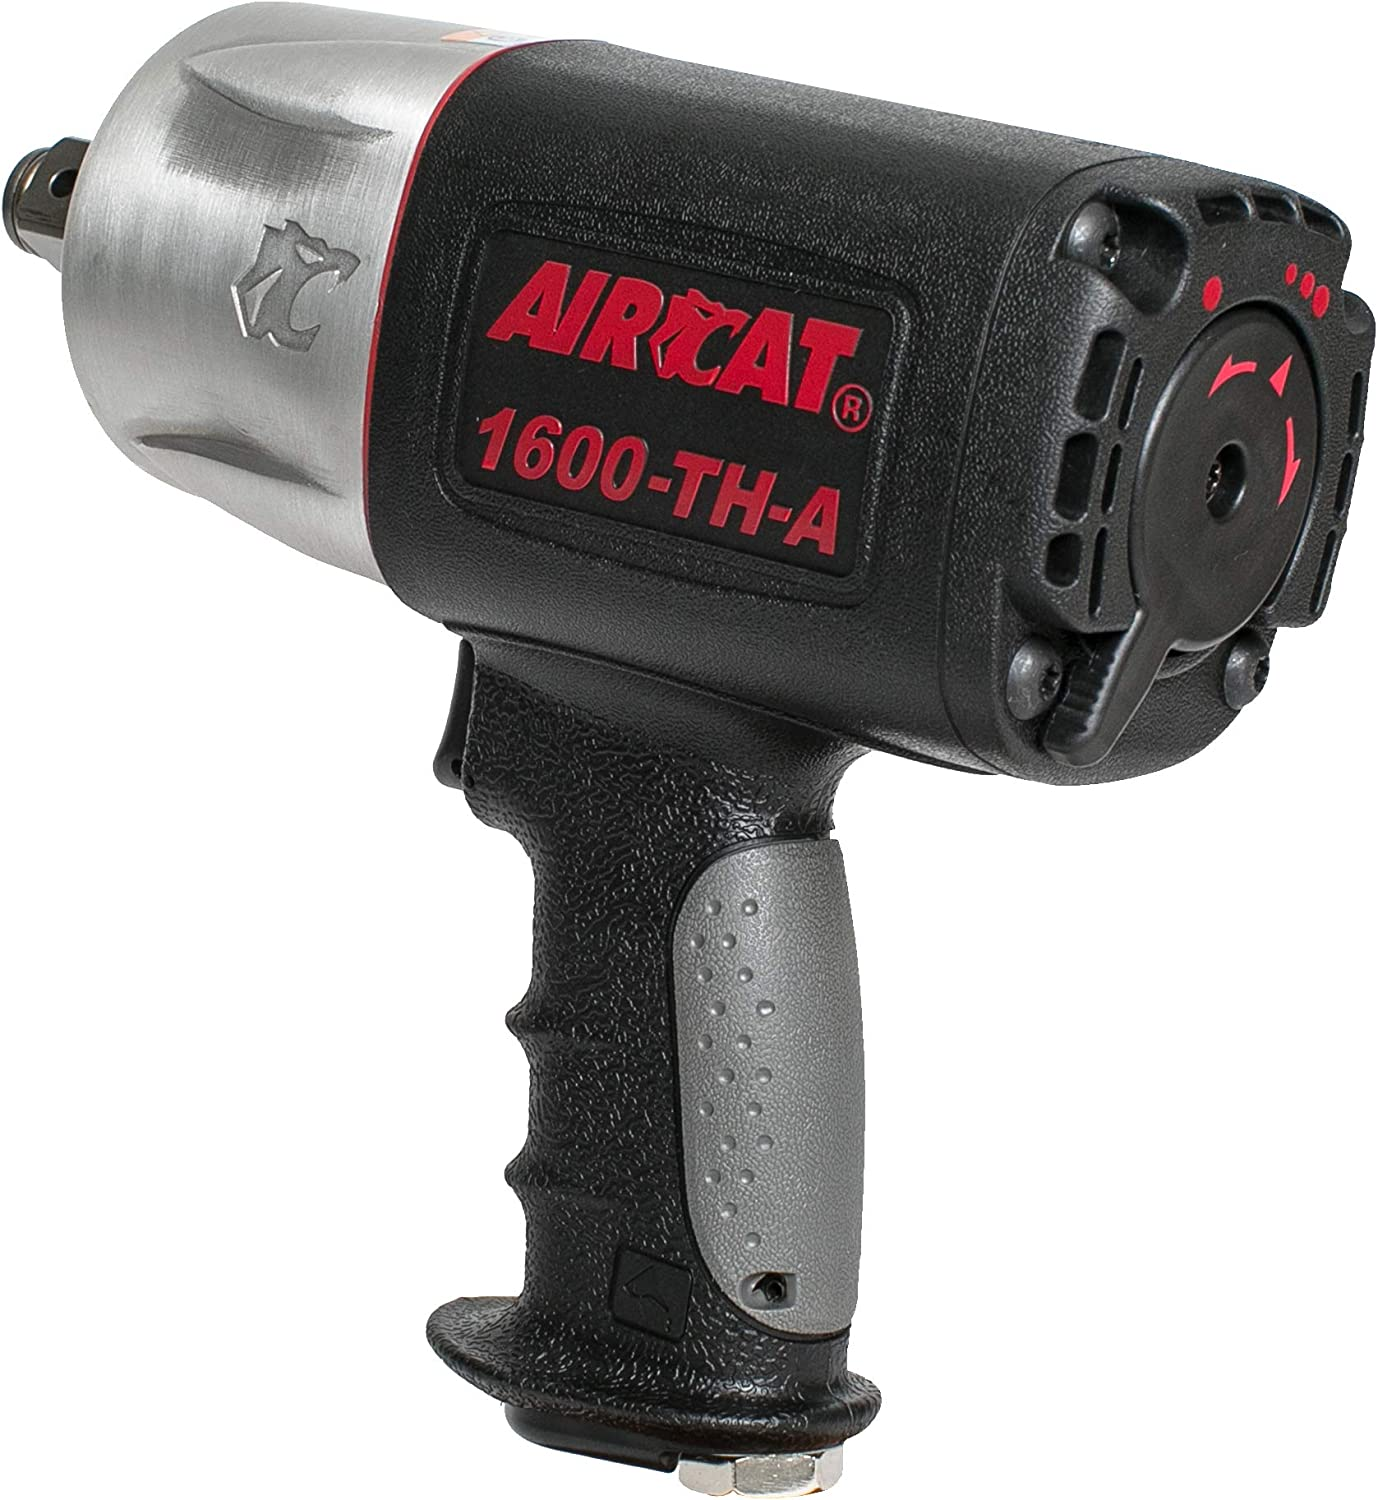 AirCat 1600-TH-A 3 4 Drive Composite Impact Wrench, Medium, Black Silver